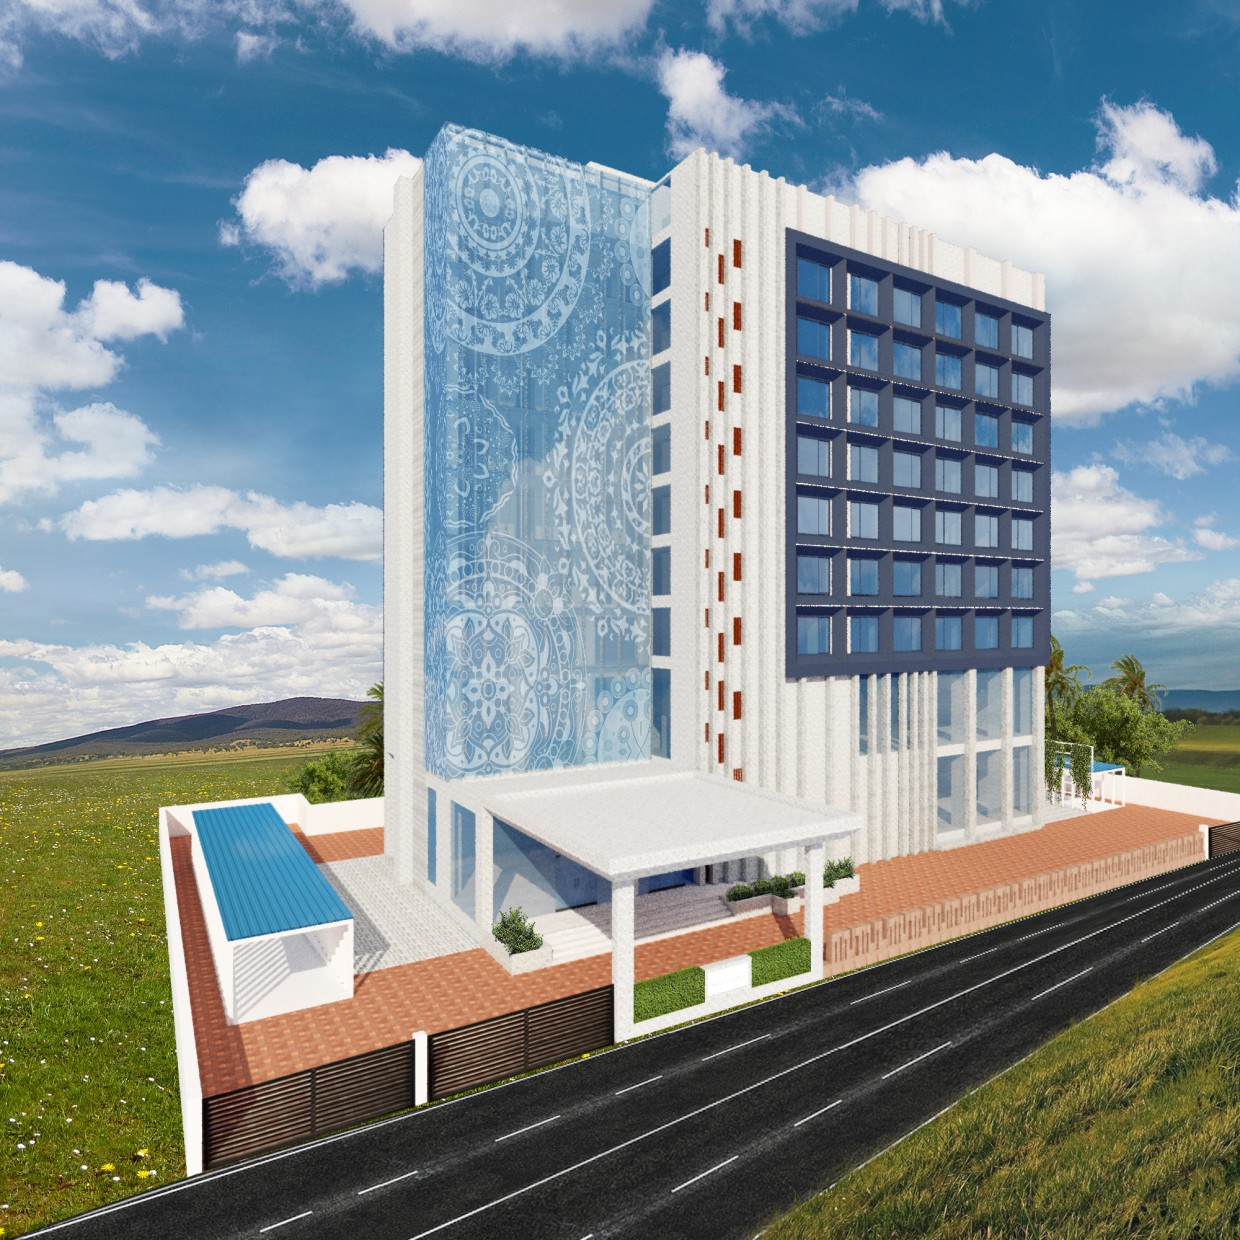 Exterior View with traditional pattern at glass facade. in SketchUp vray 3.0 image